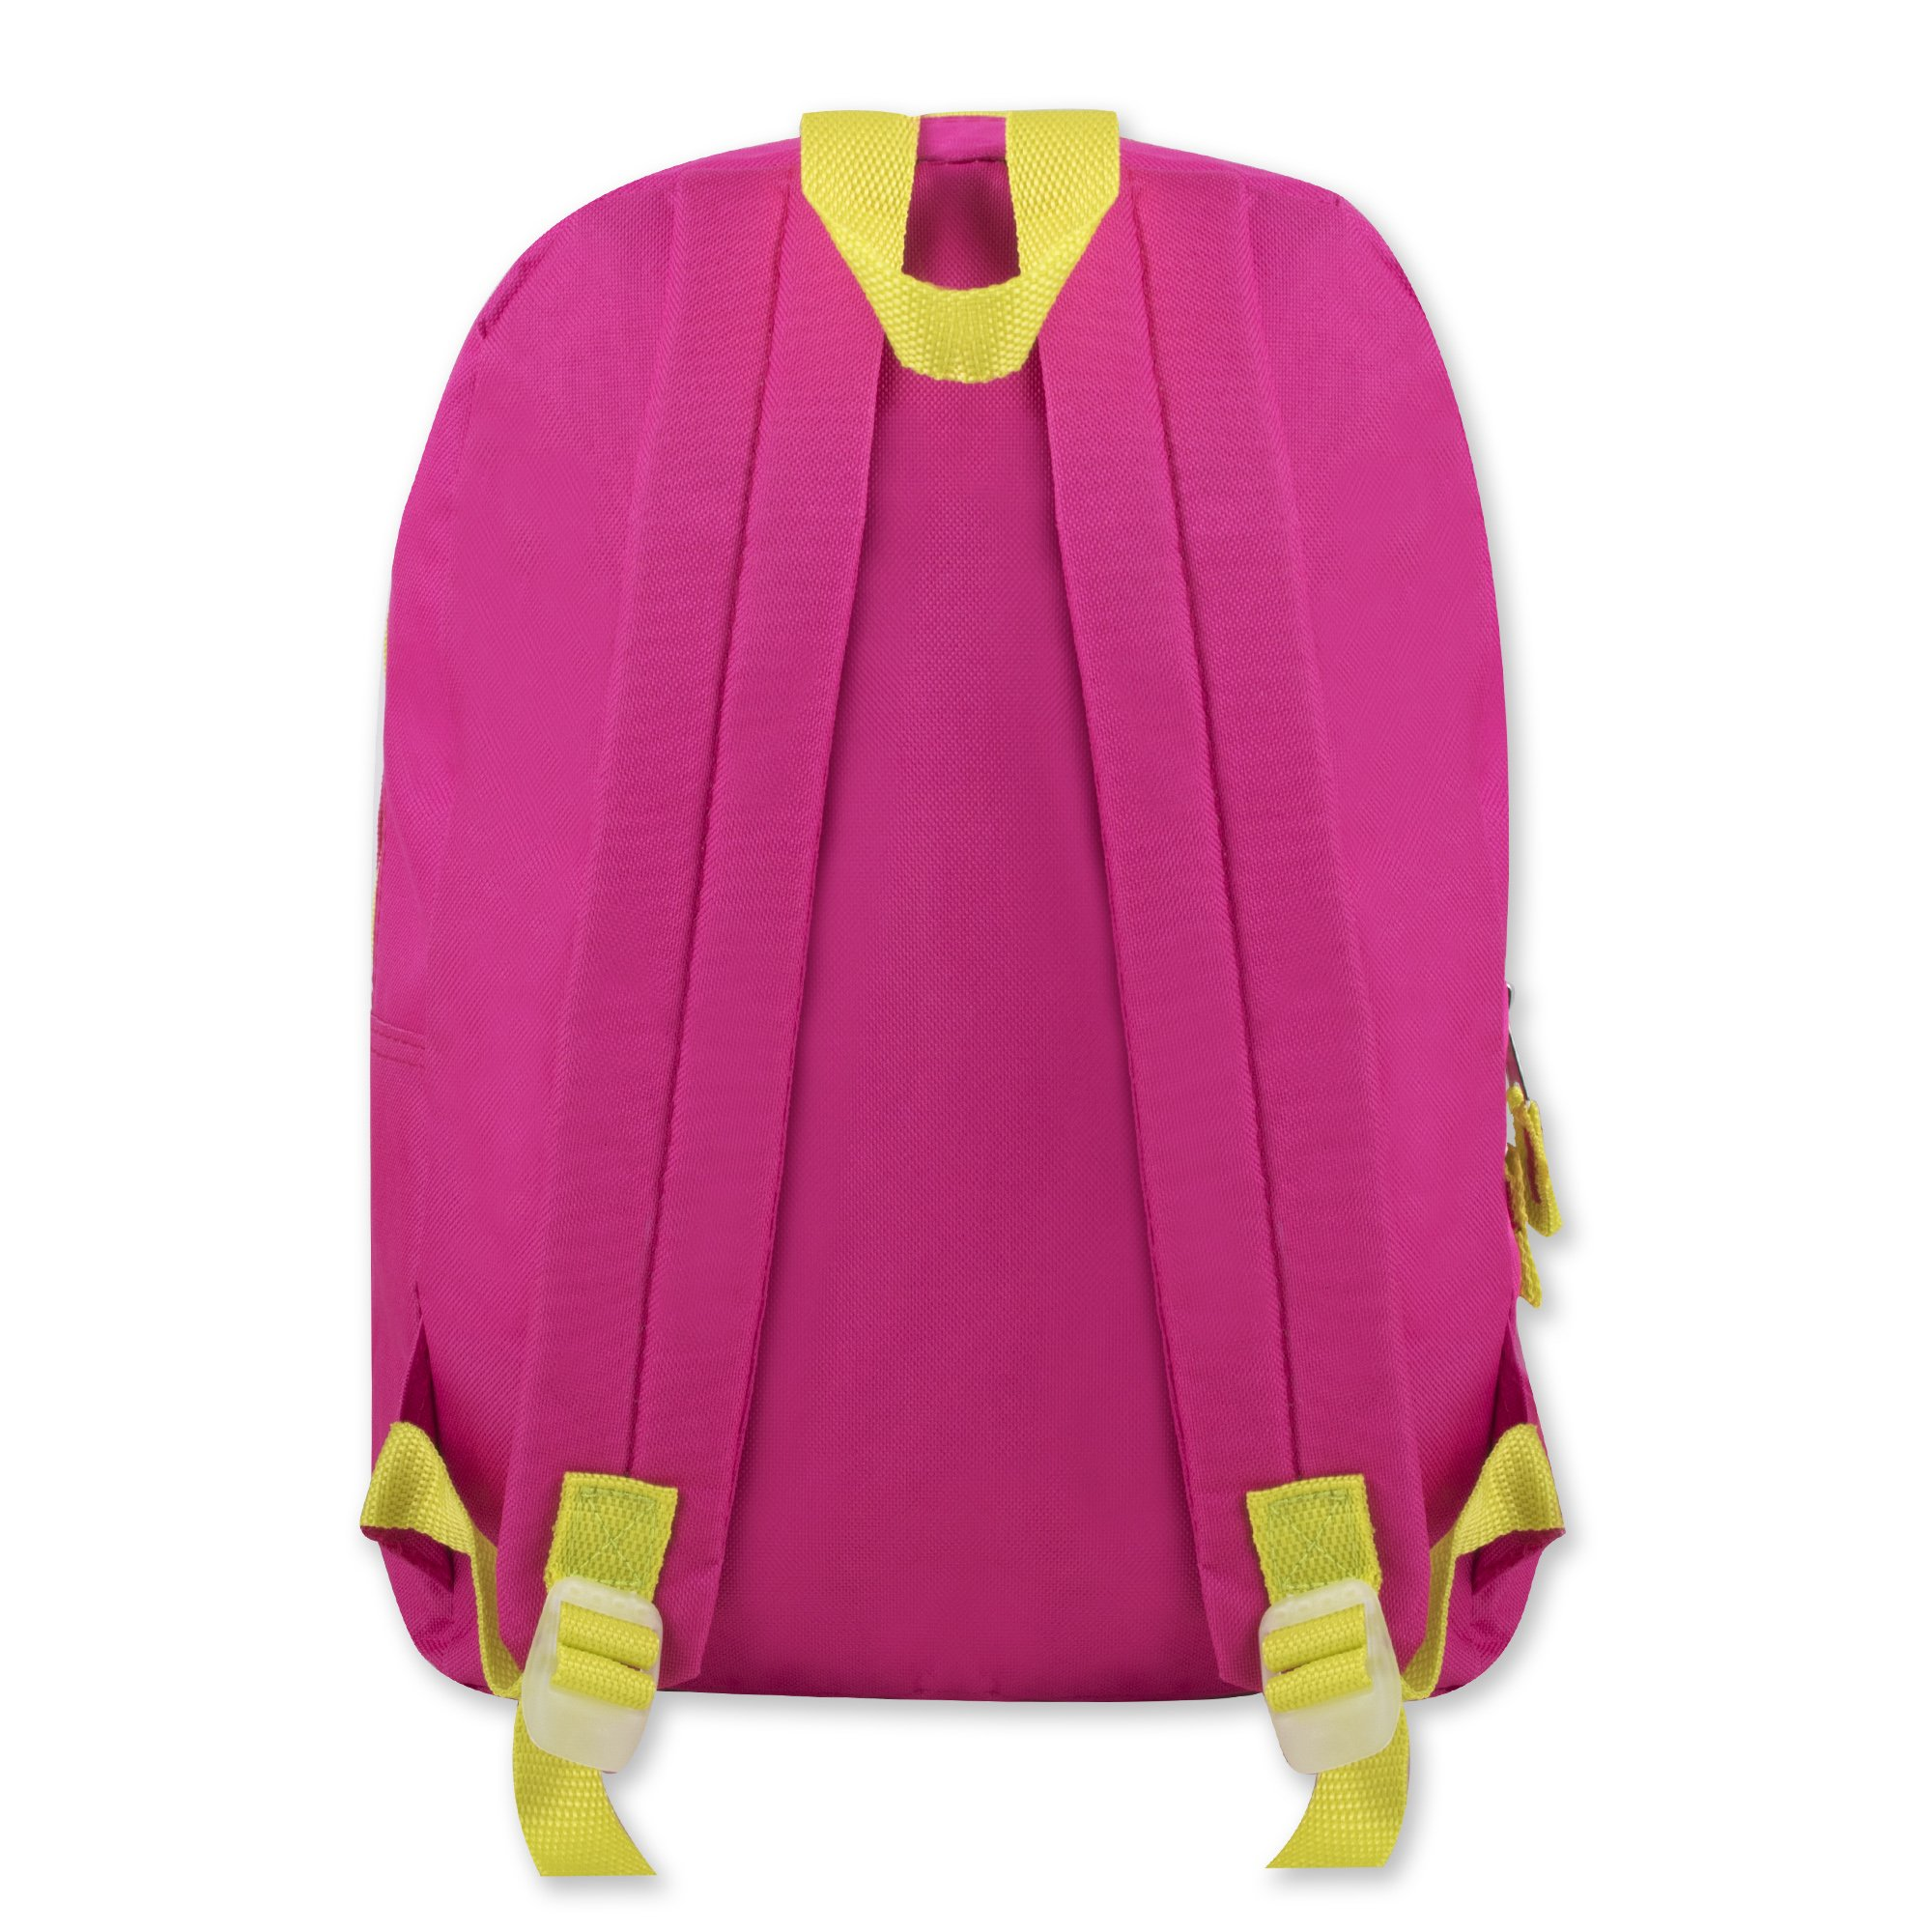 Trail maker Character Backpack (15'') with Fun Fashionable Design for Boys & Girls (Unicorn Adventure) by Trail maker (Image #4)